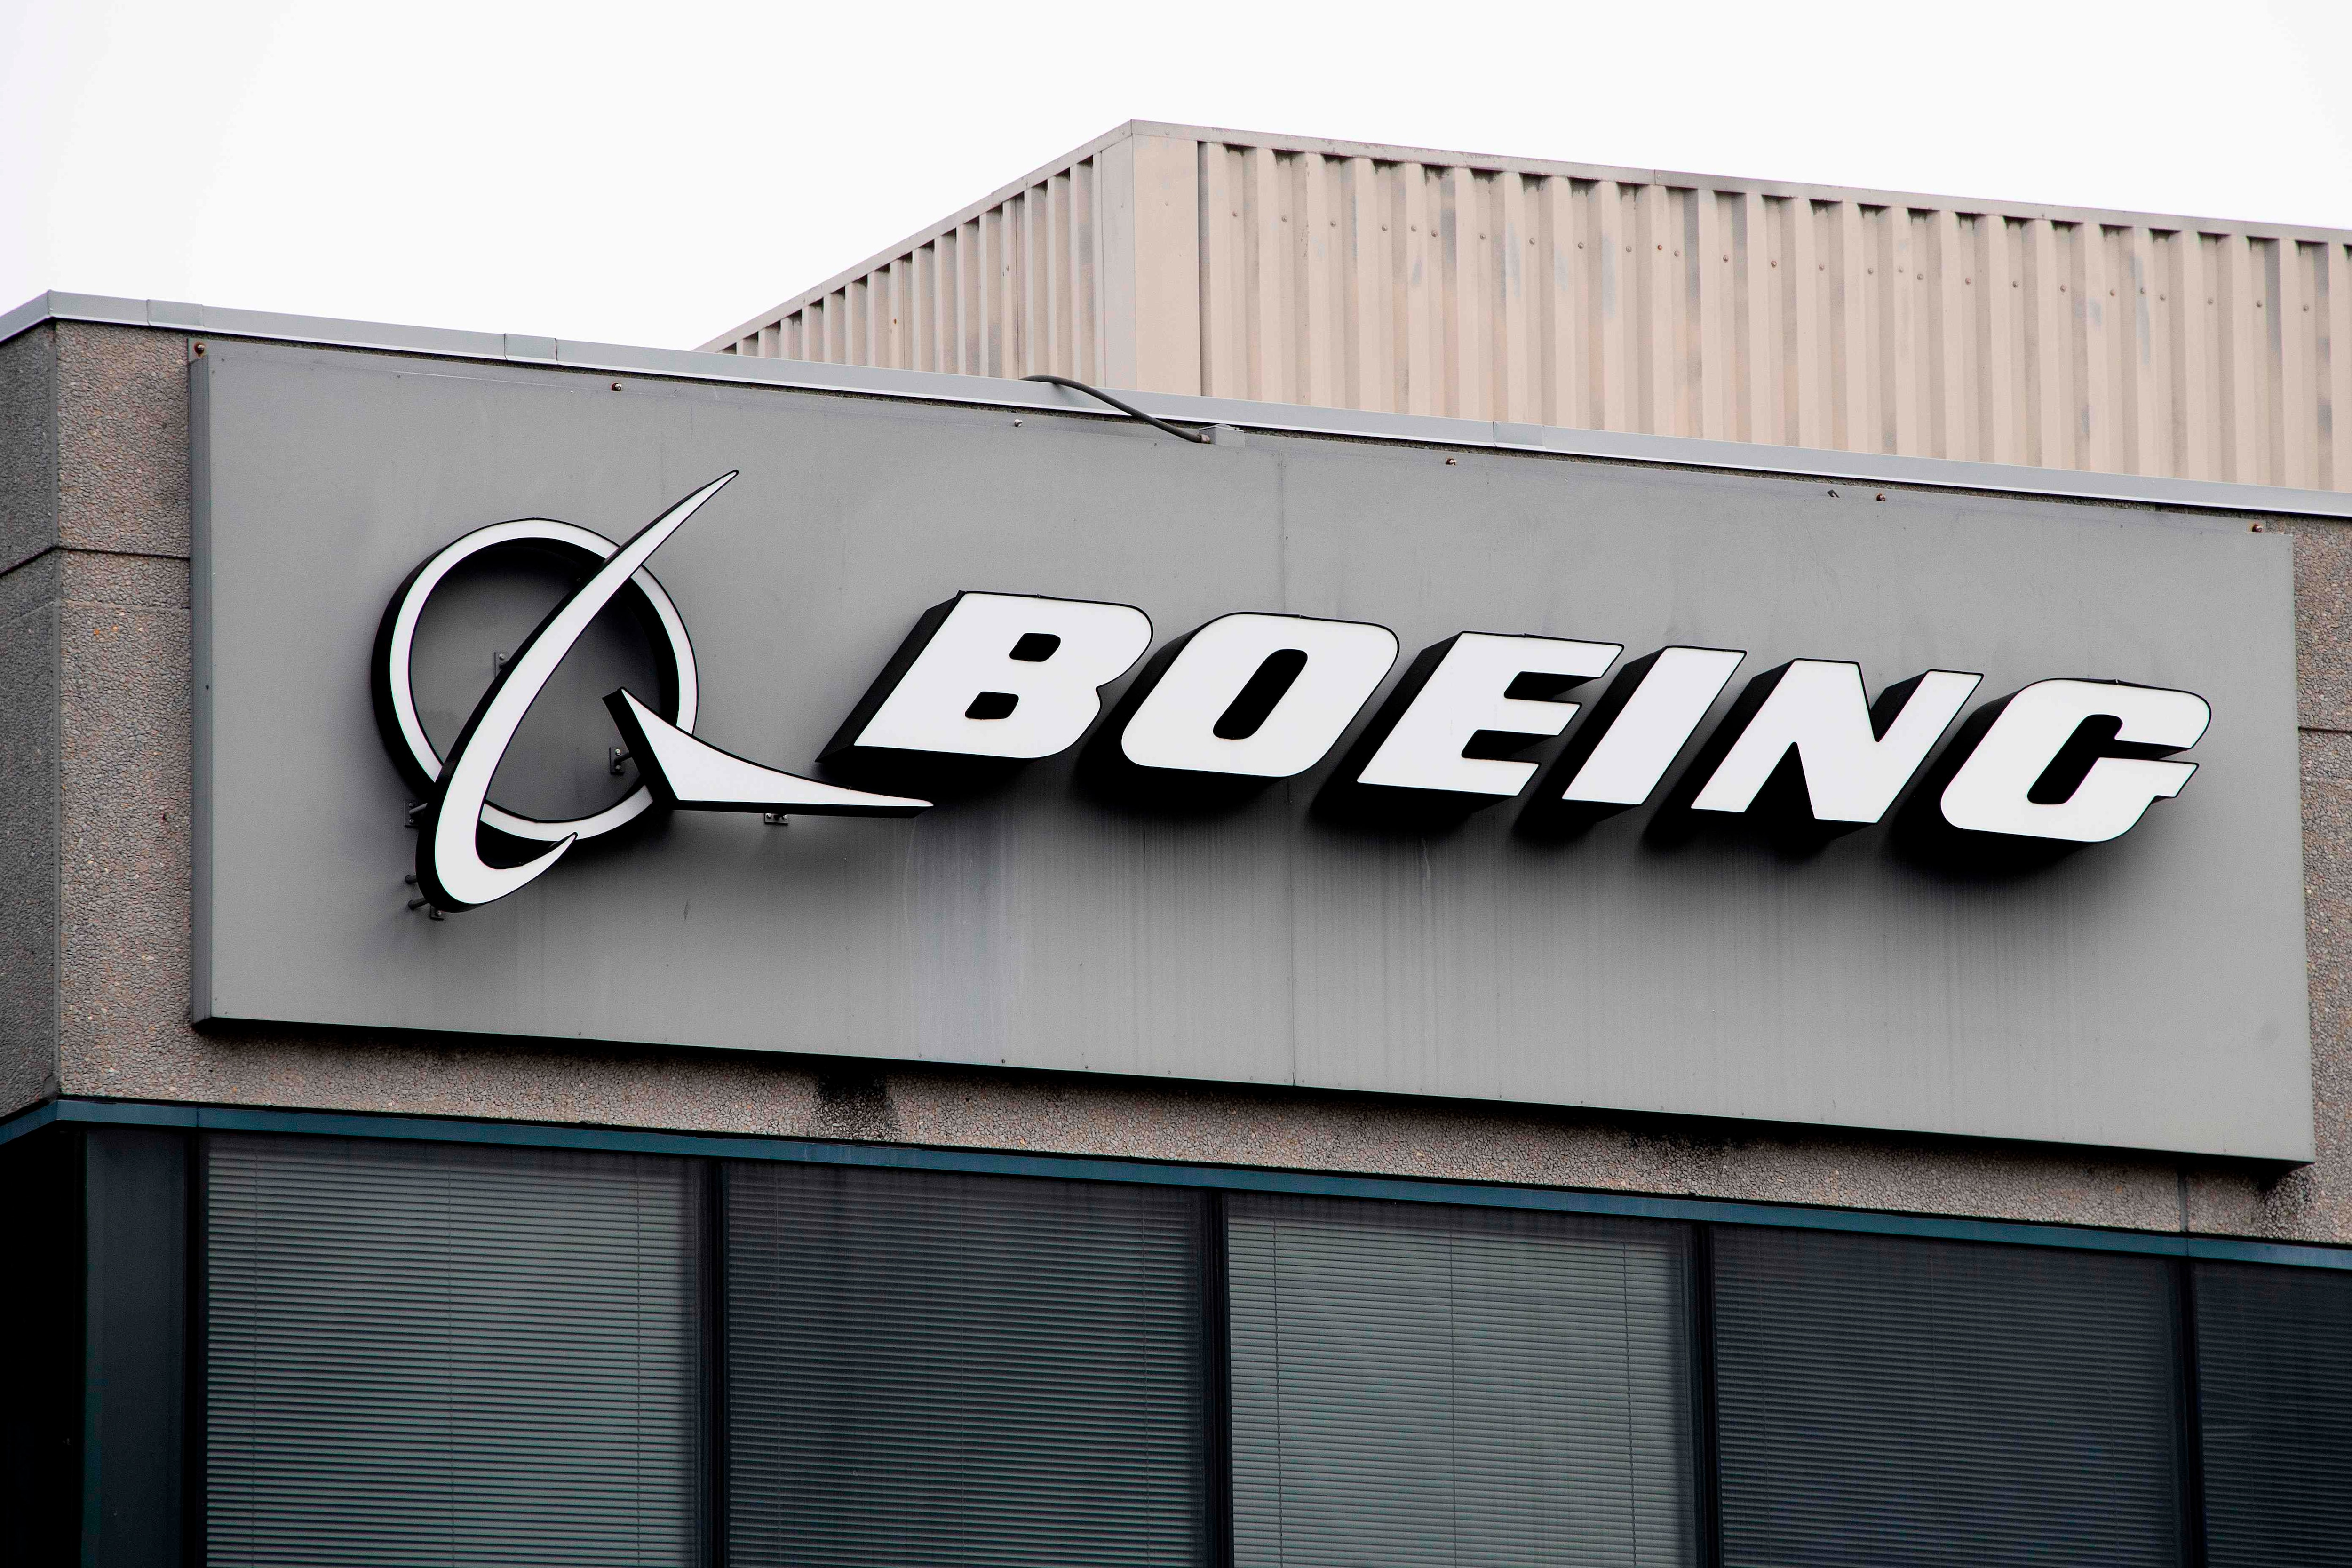 Boeing reshuffles management of troubled 737 Max program